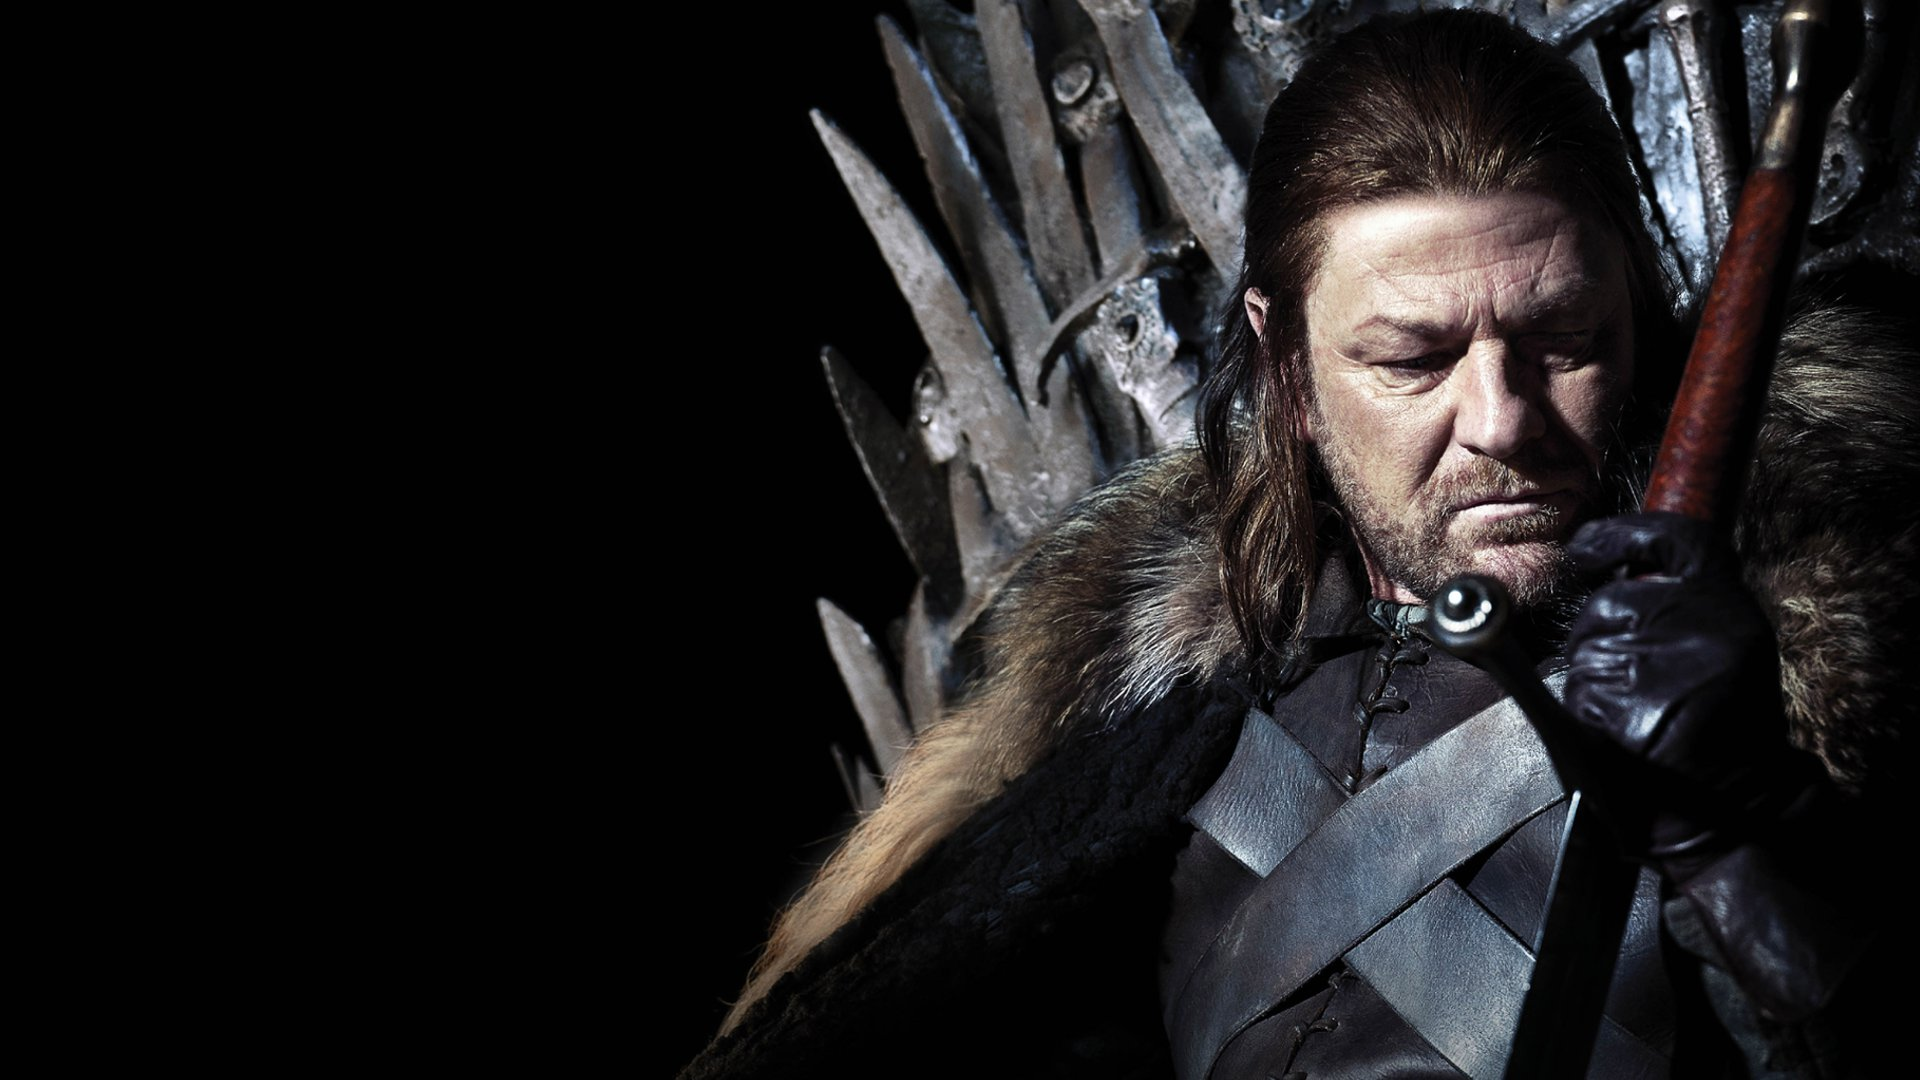 Game of Thrones (2011, HBO)